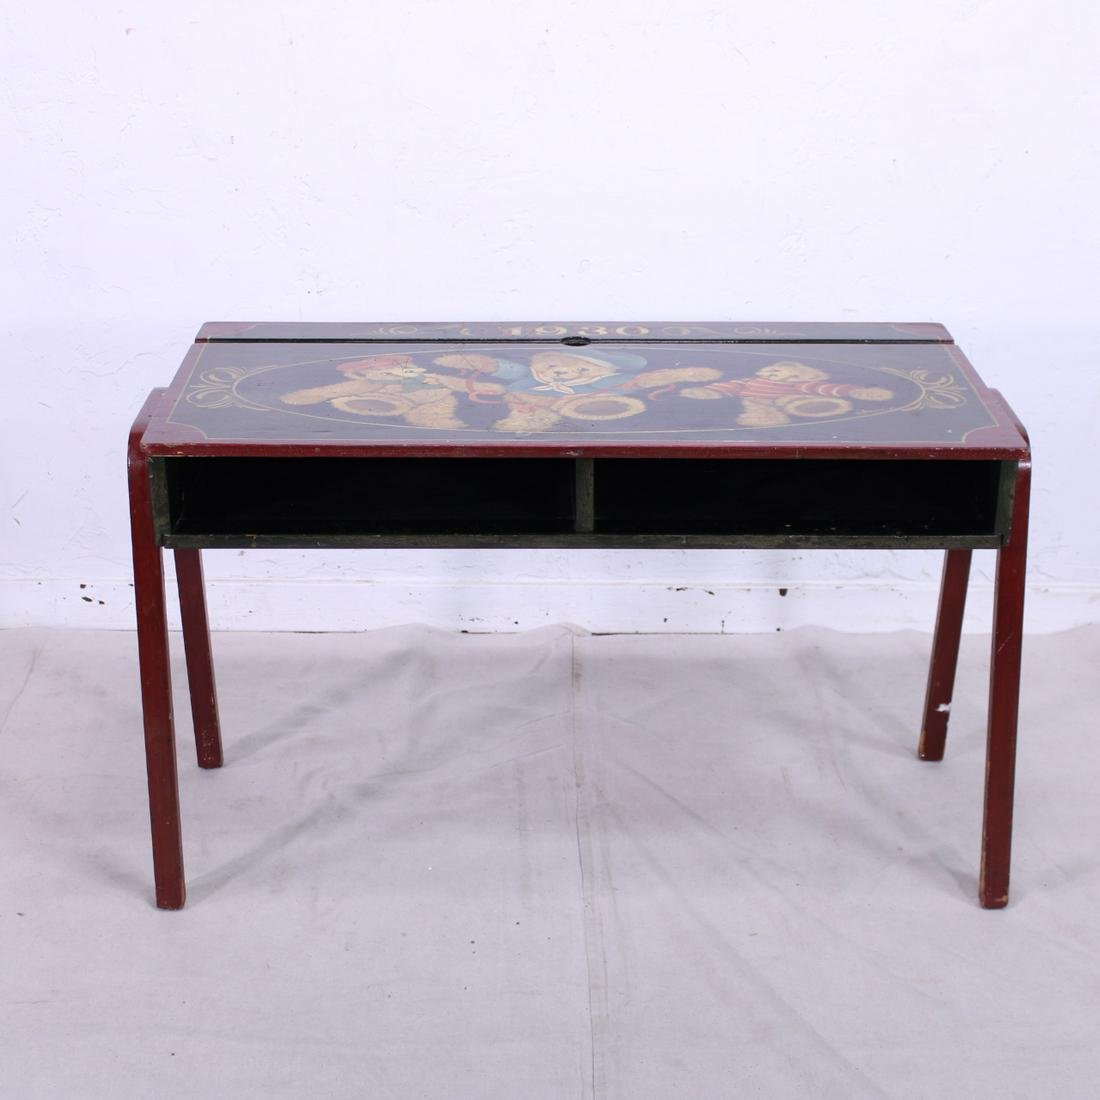 Childs Desk with Teddy Bears simliar to Alices